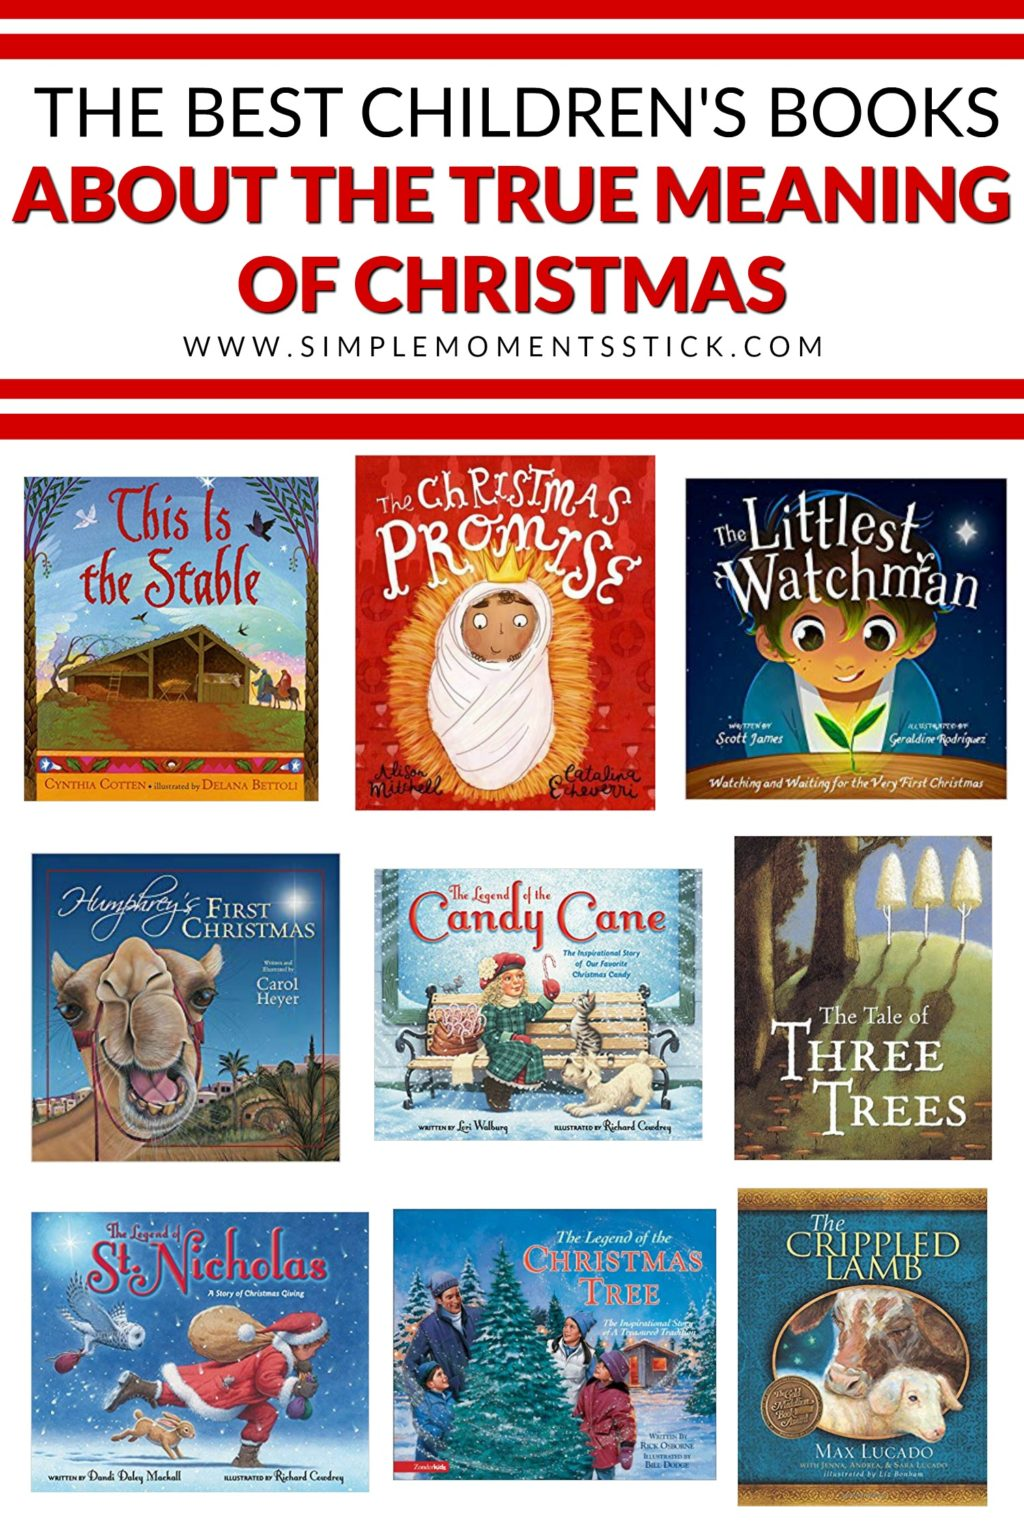 Are you looking for children's books about the true meaning of Christmas? This post has the best children's nativity books, children's books about Christmas tradition, and children's books about the real St. Nicholas. These are sure to become your kids new favorite Christmas books!